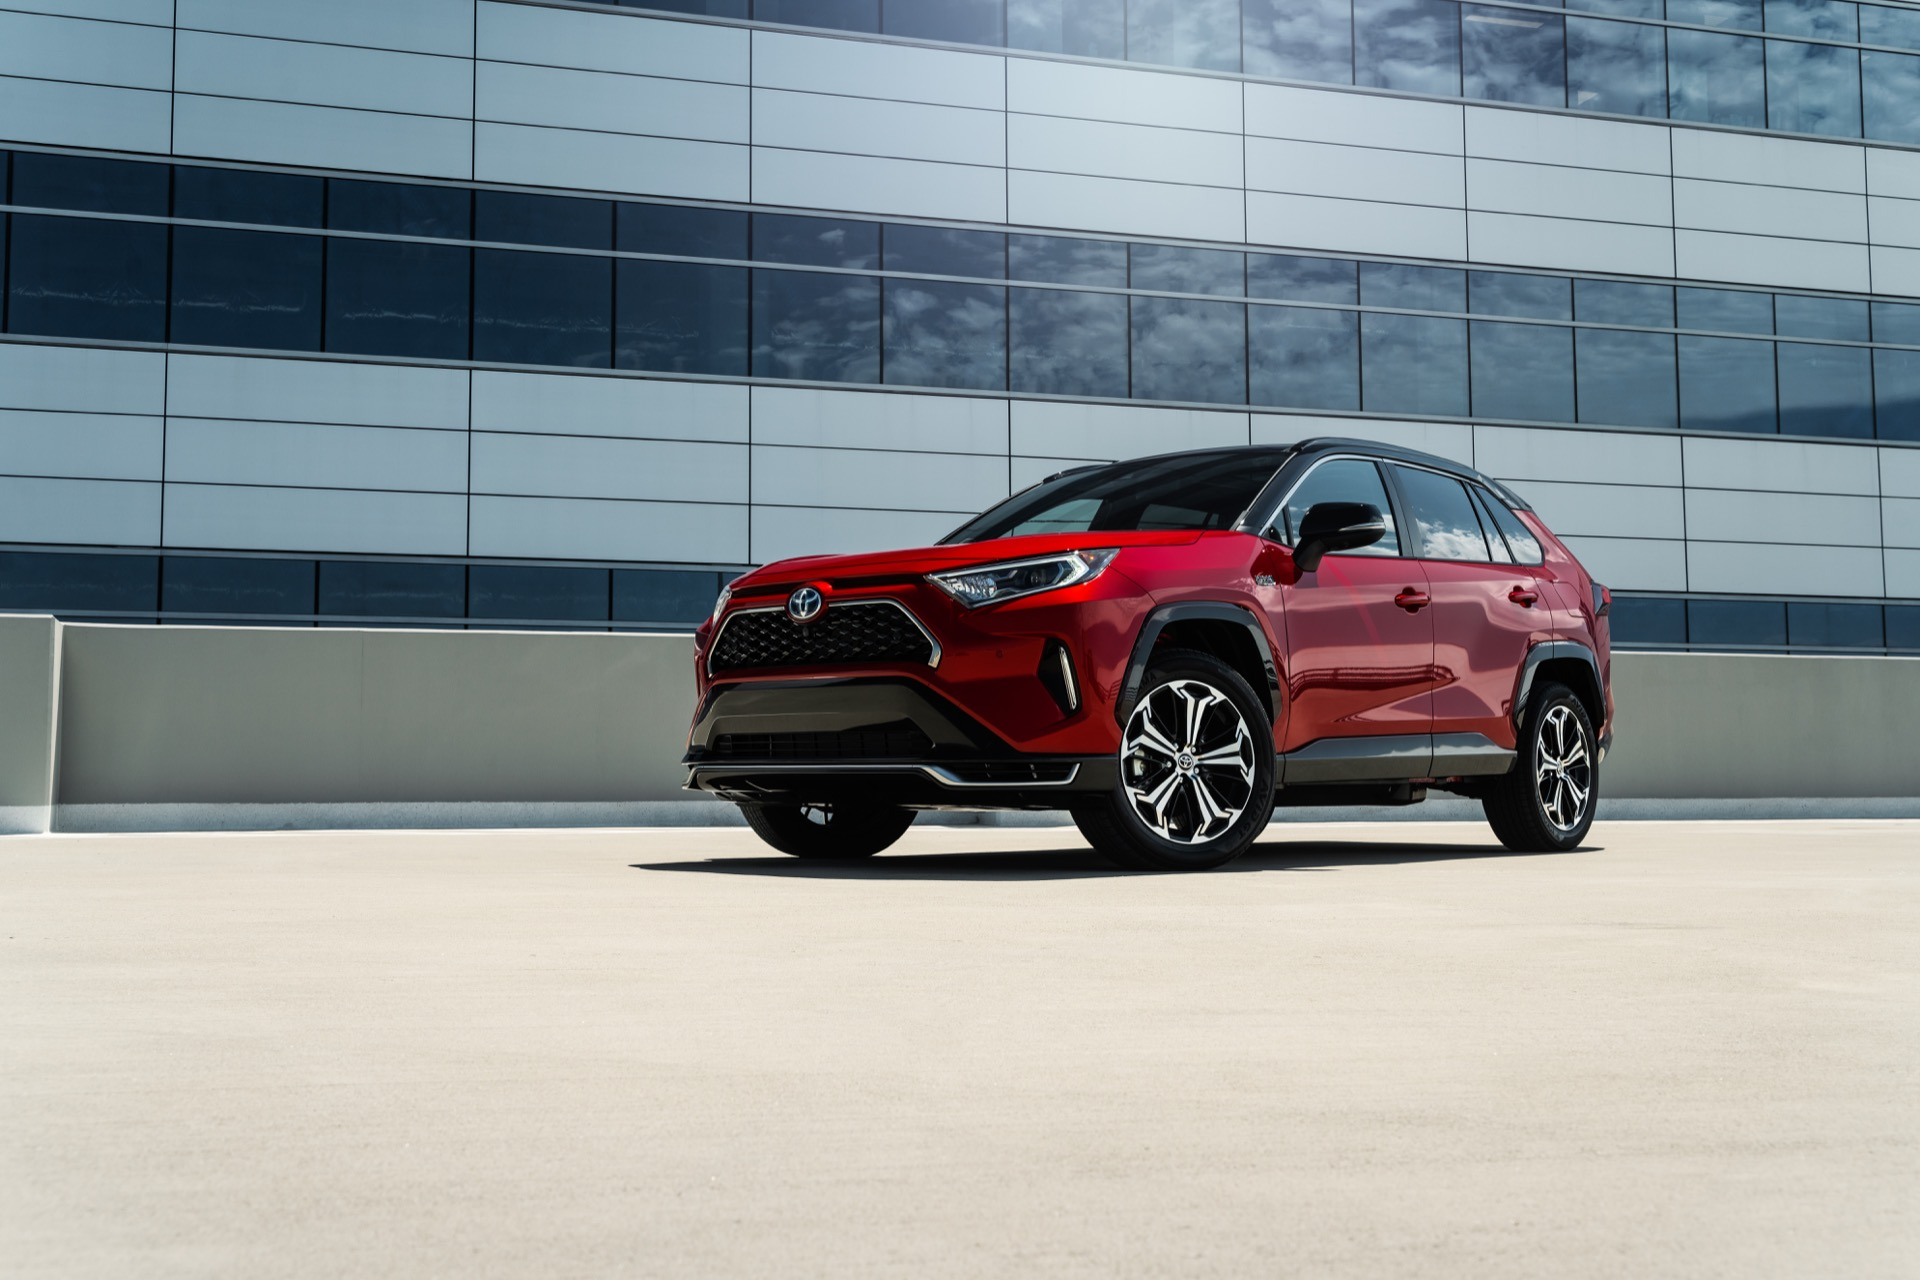 2021 Toyota RAV4 Prime: How its 42-mile range and 38 mpg compare to rivals